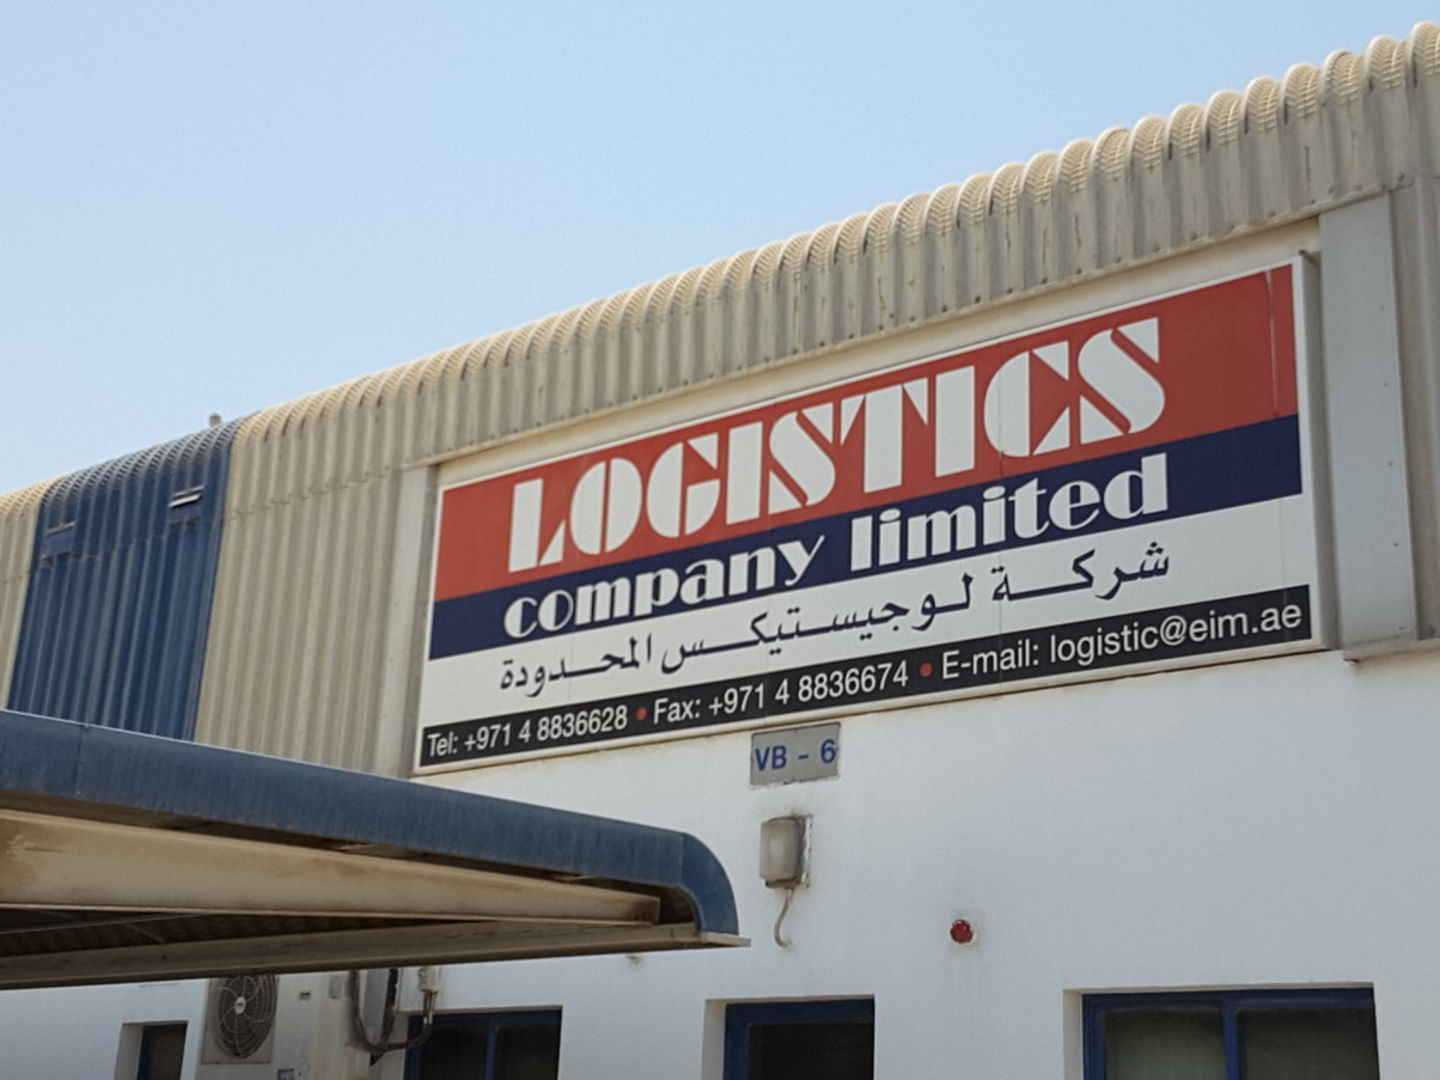 Logistics Company Limited, (Distribution Services) in Jebel Ali Free